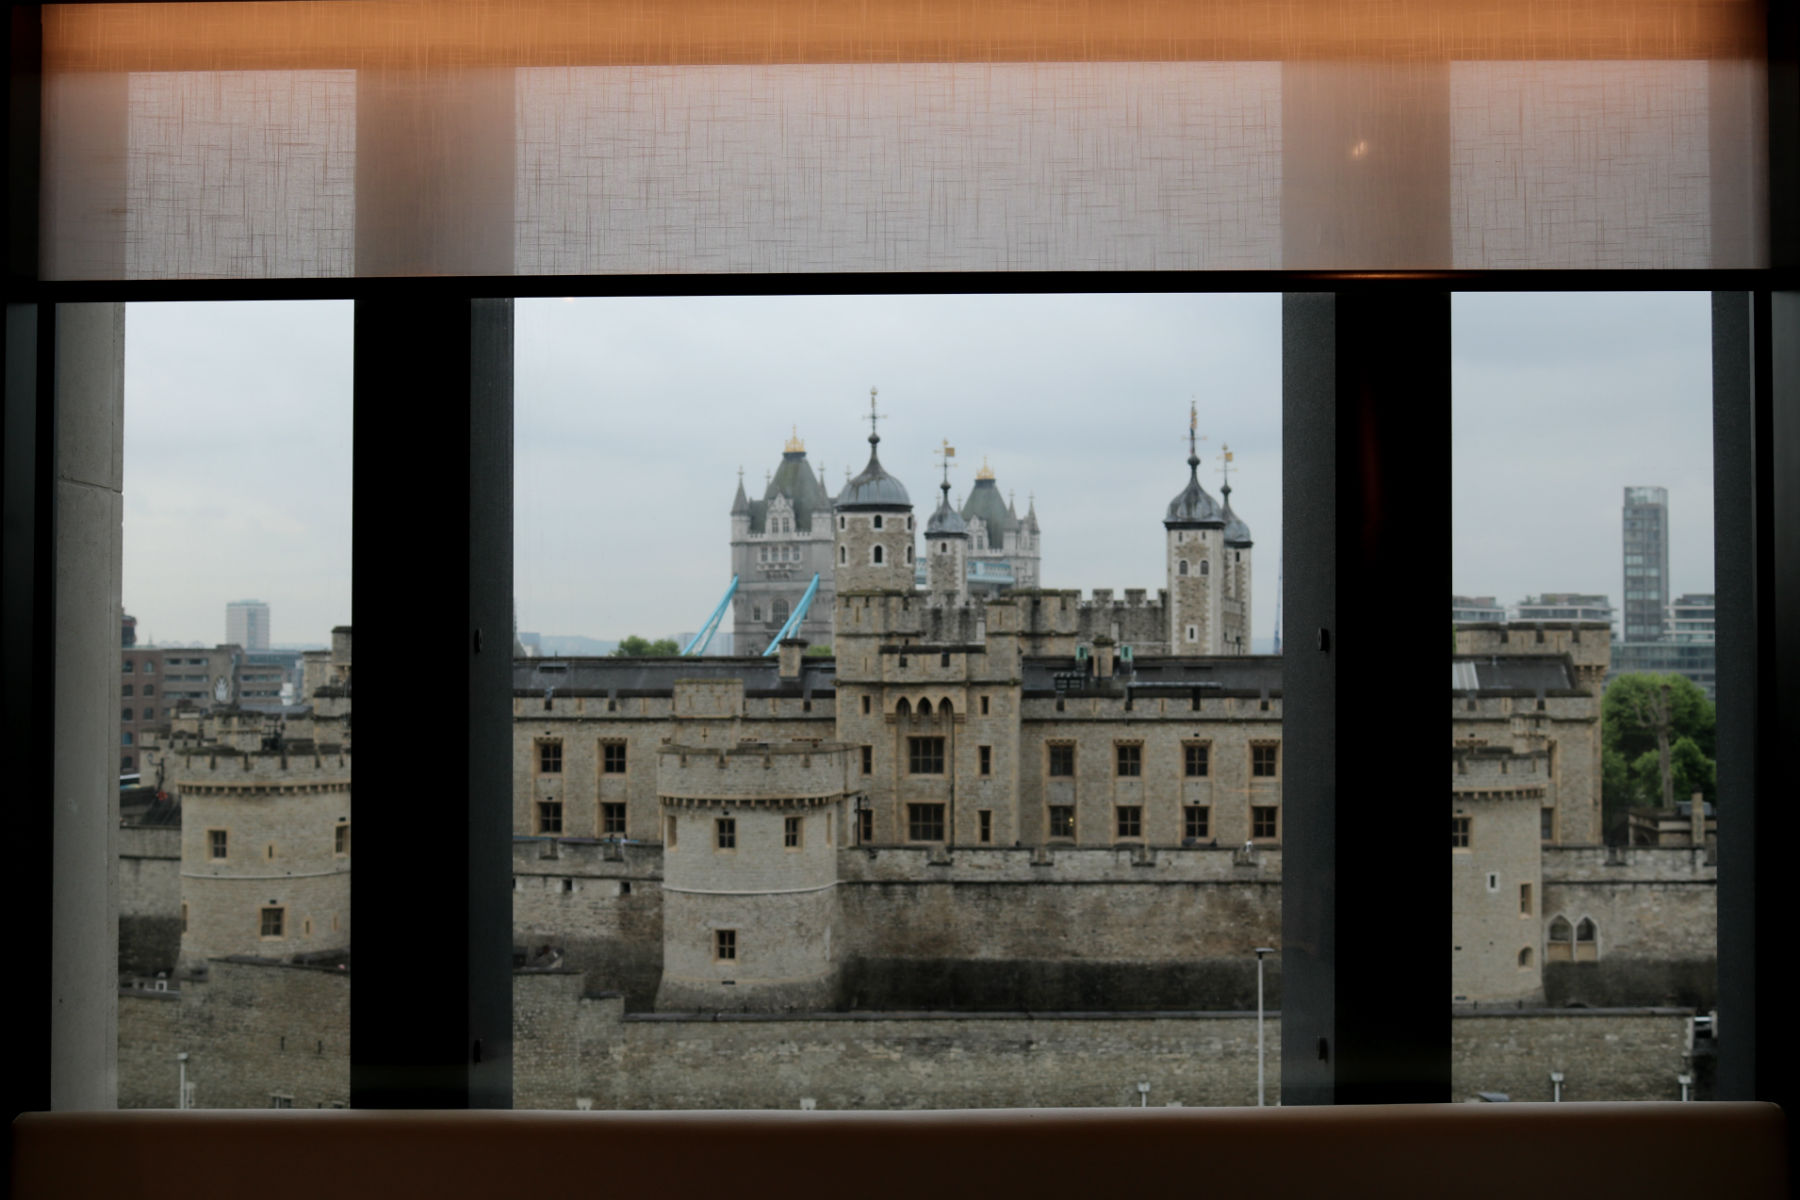 View of the Tower of London from Citizen M